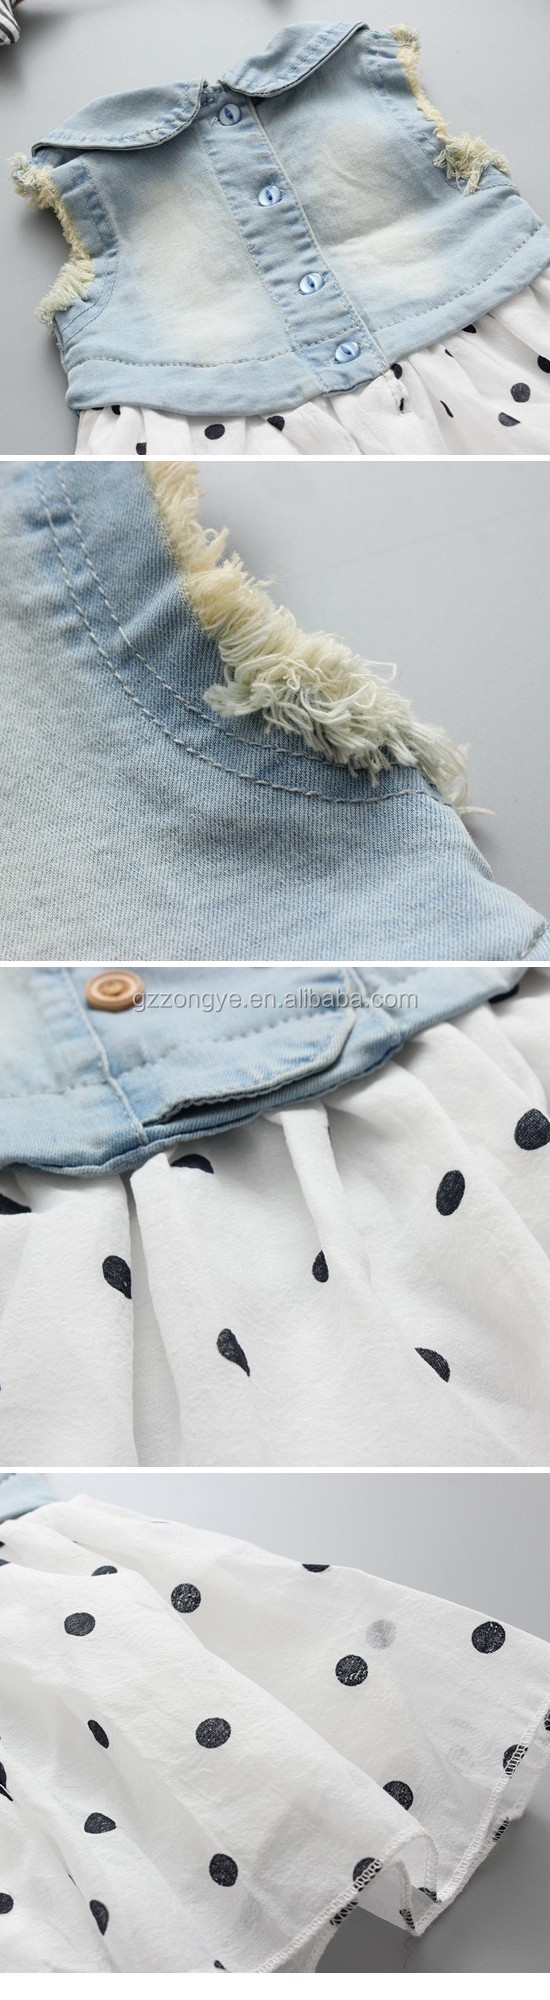 Children wear clothes little girl sleeveless denim clothing coat short ruffle dress suits